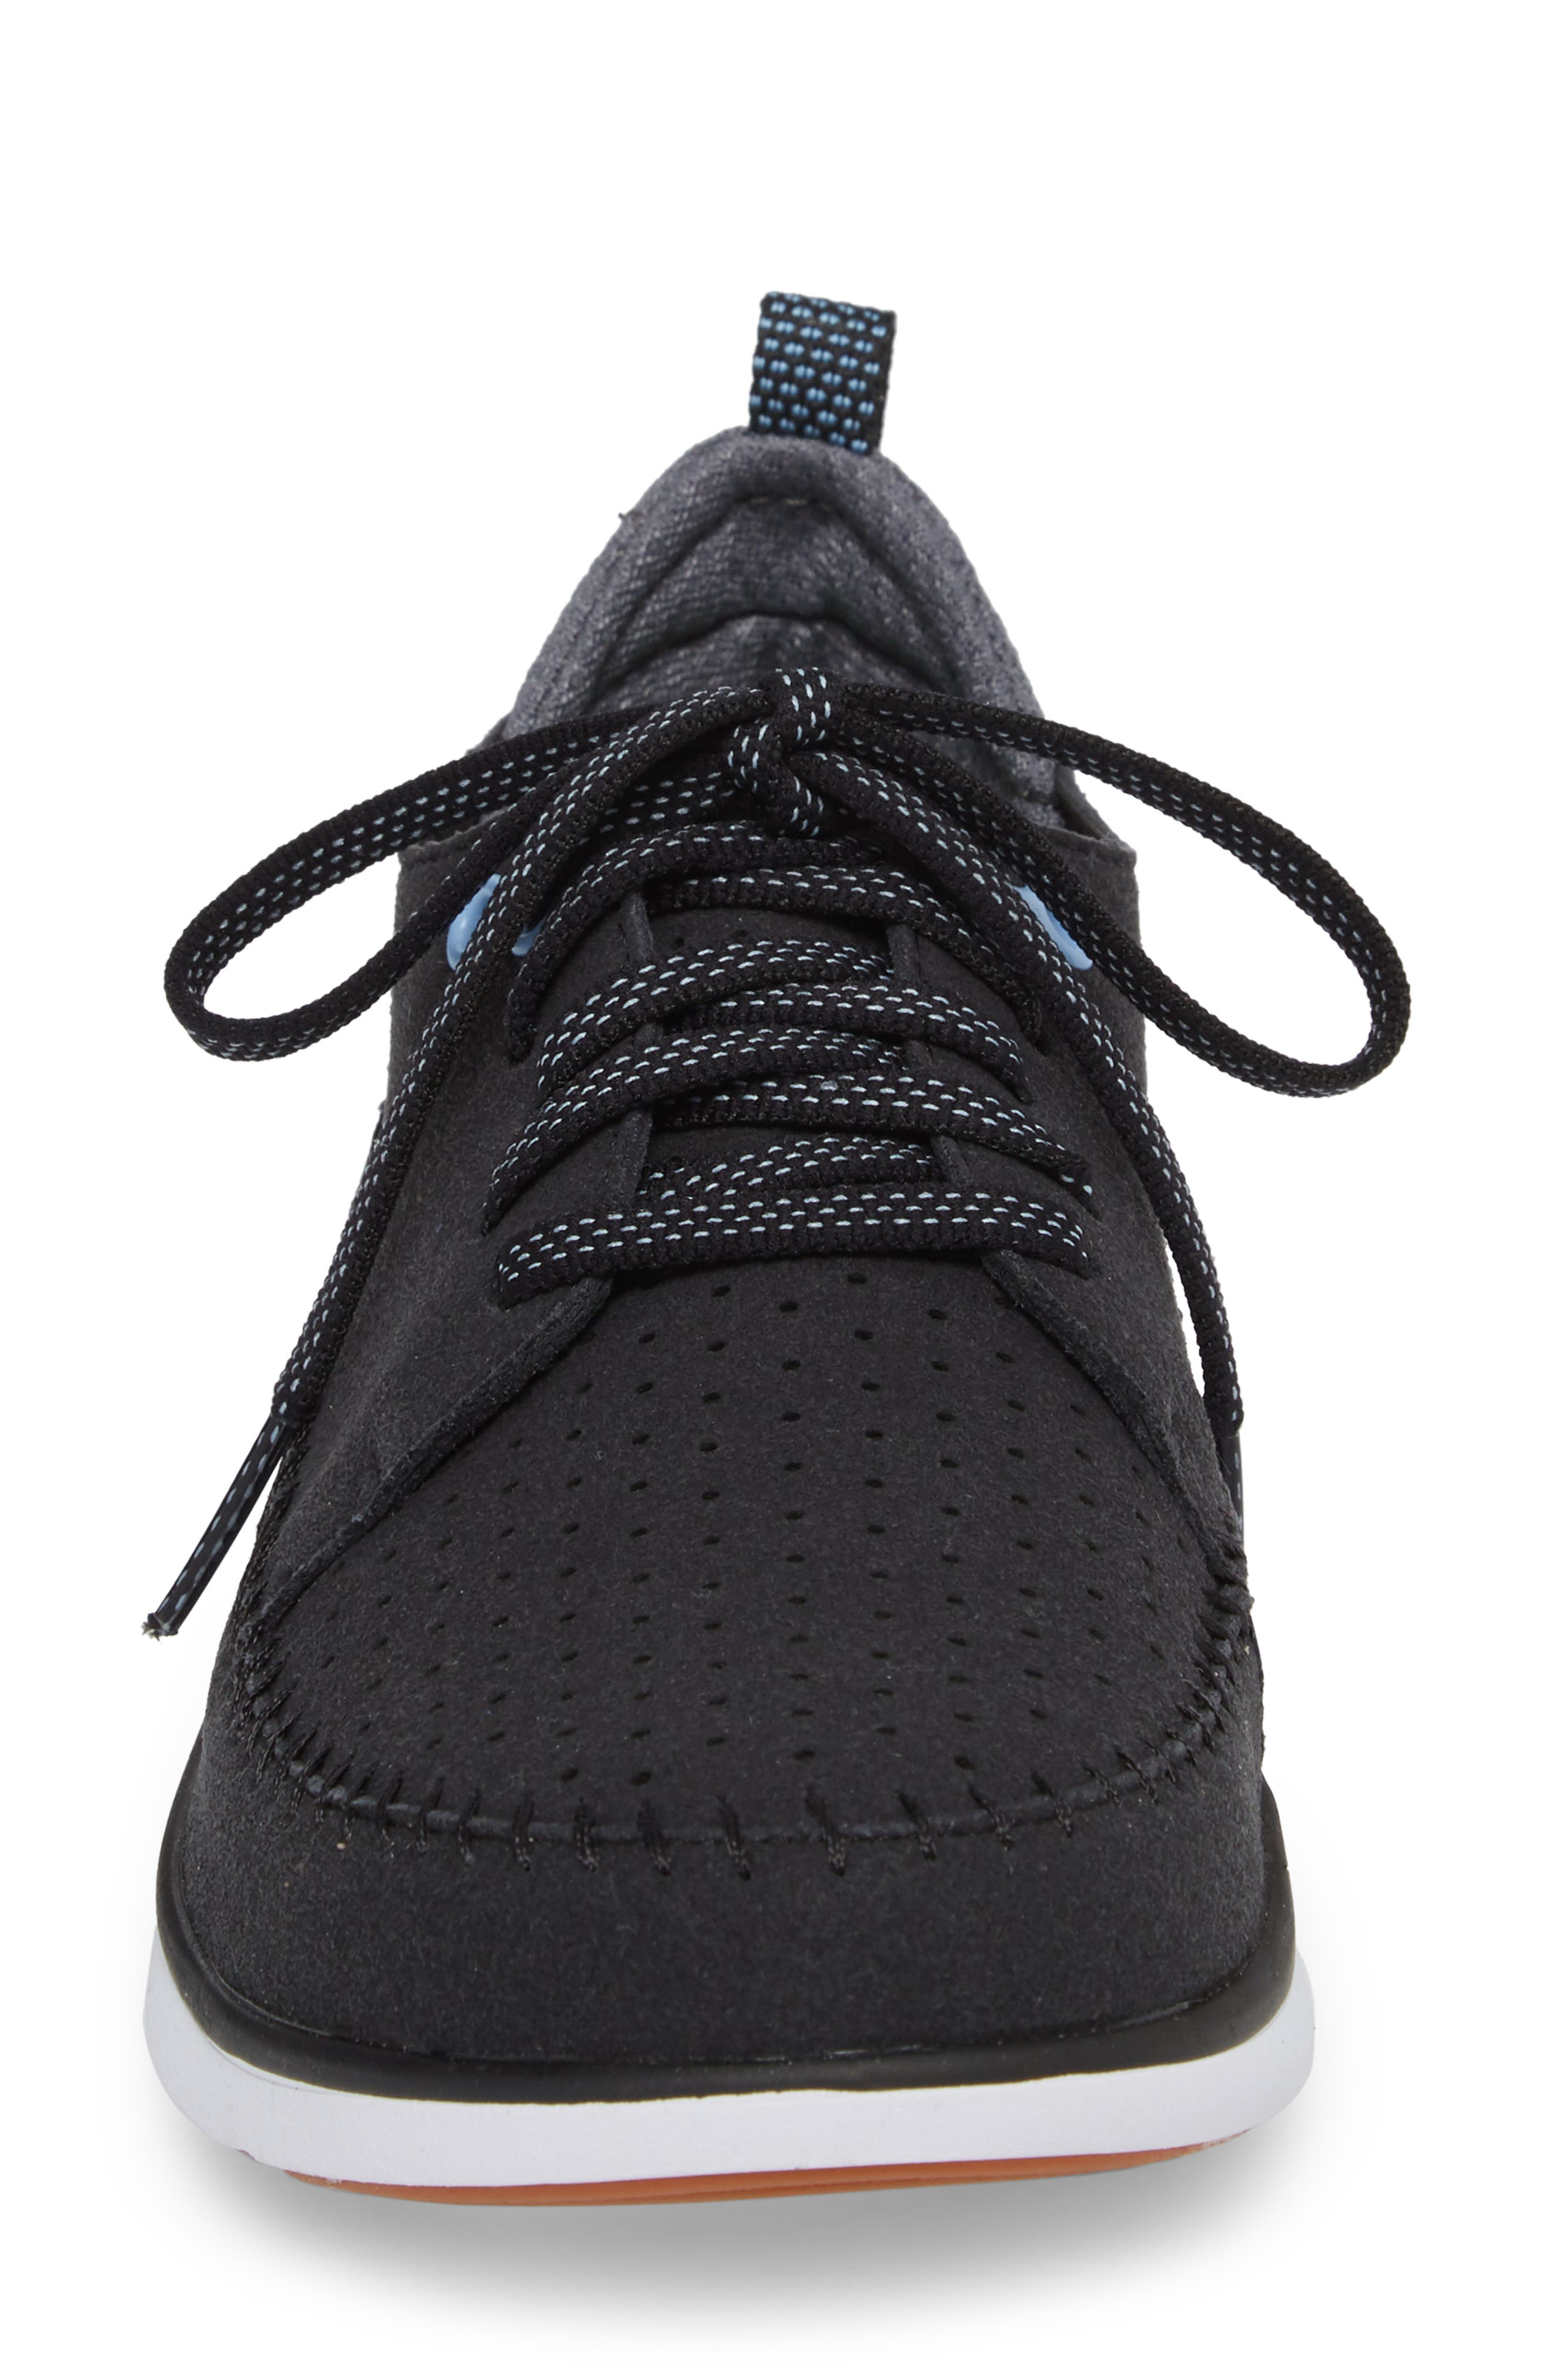 Addy Sneaker,                             Alternate thumbnail 4, color,                             BLACK FABRIC